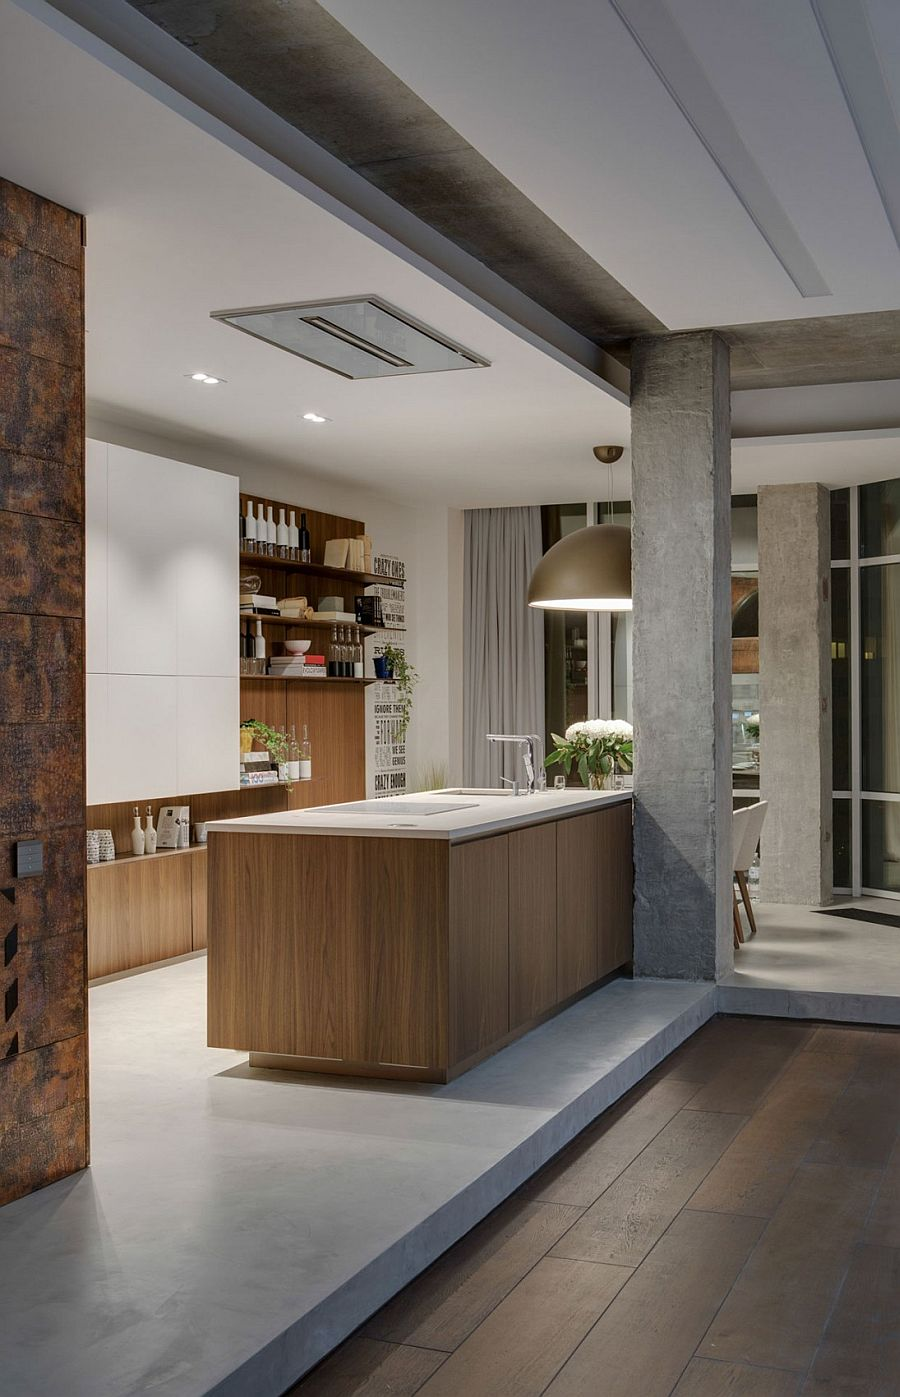 Beautiful kitchen design with large industrial lighting and floating wooden shelves